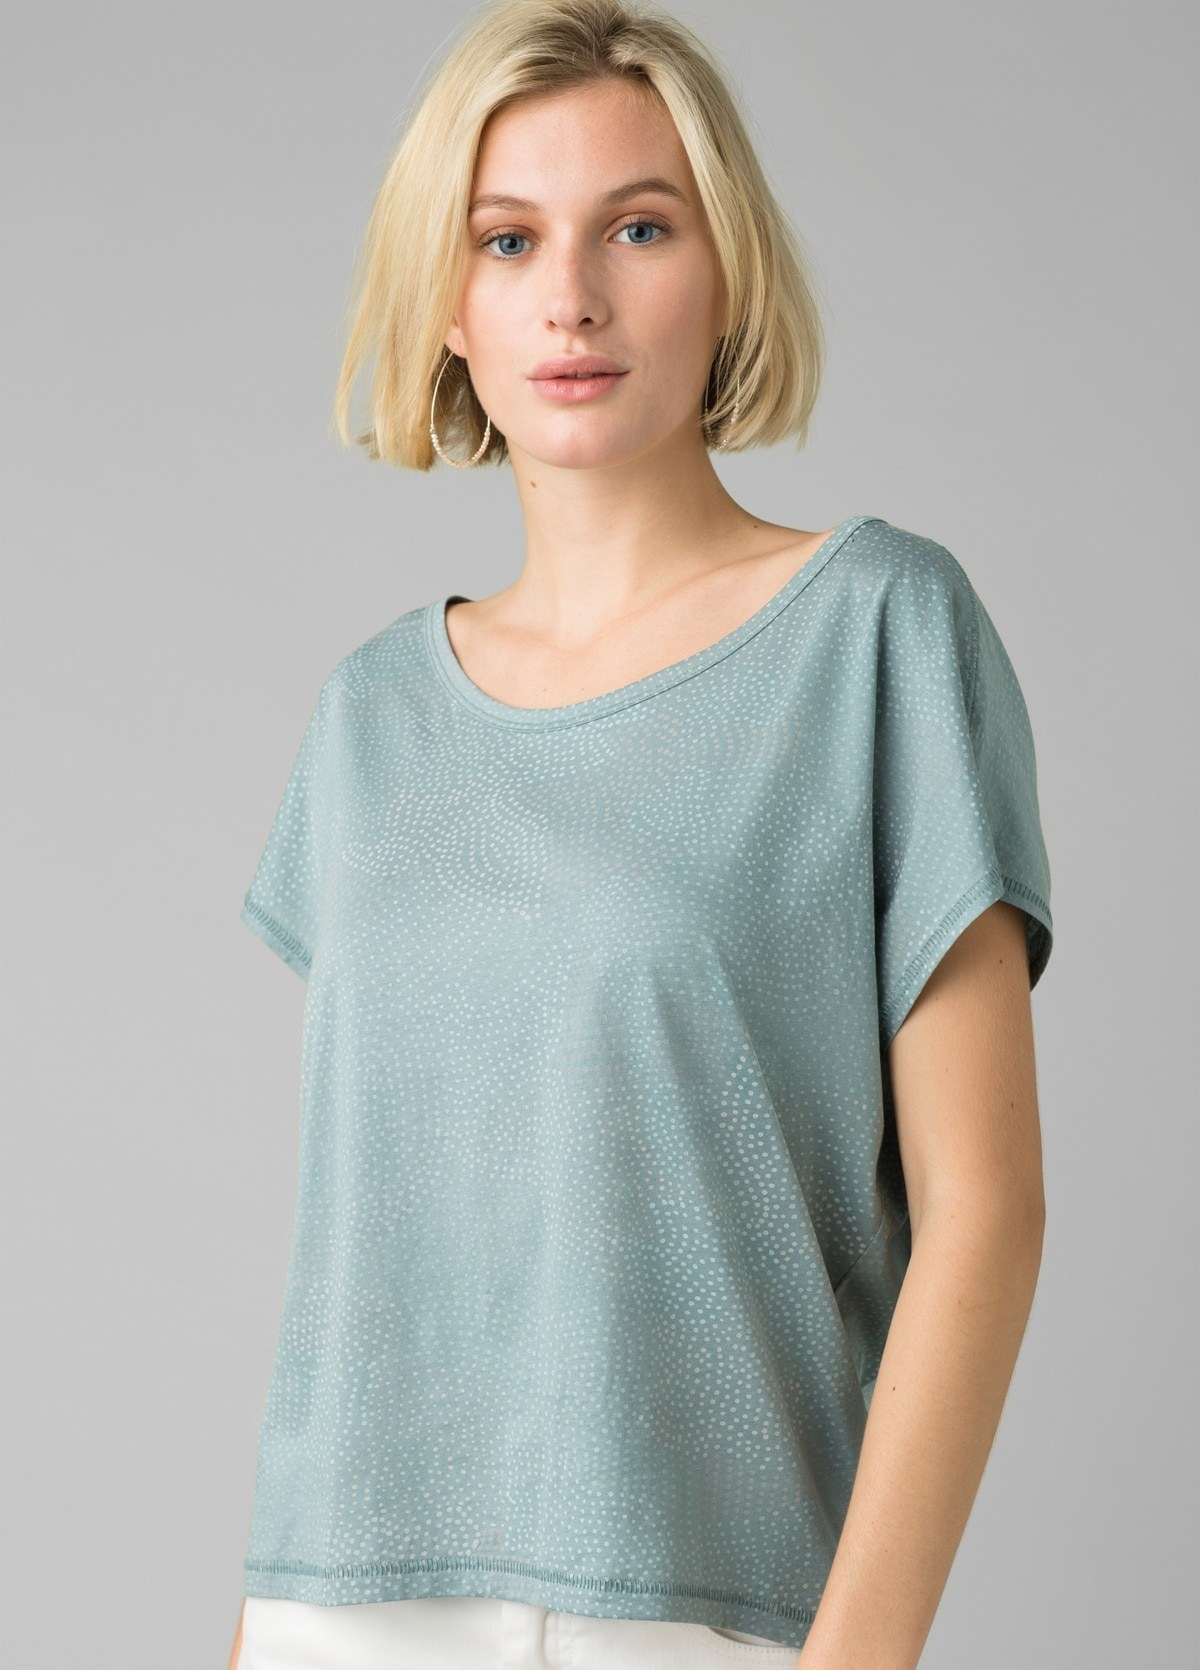 model in light teal wide crew neck tee with small lighter blue speckles